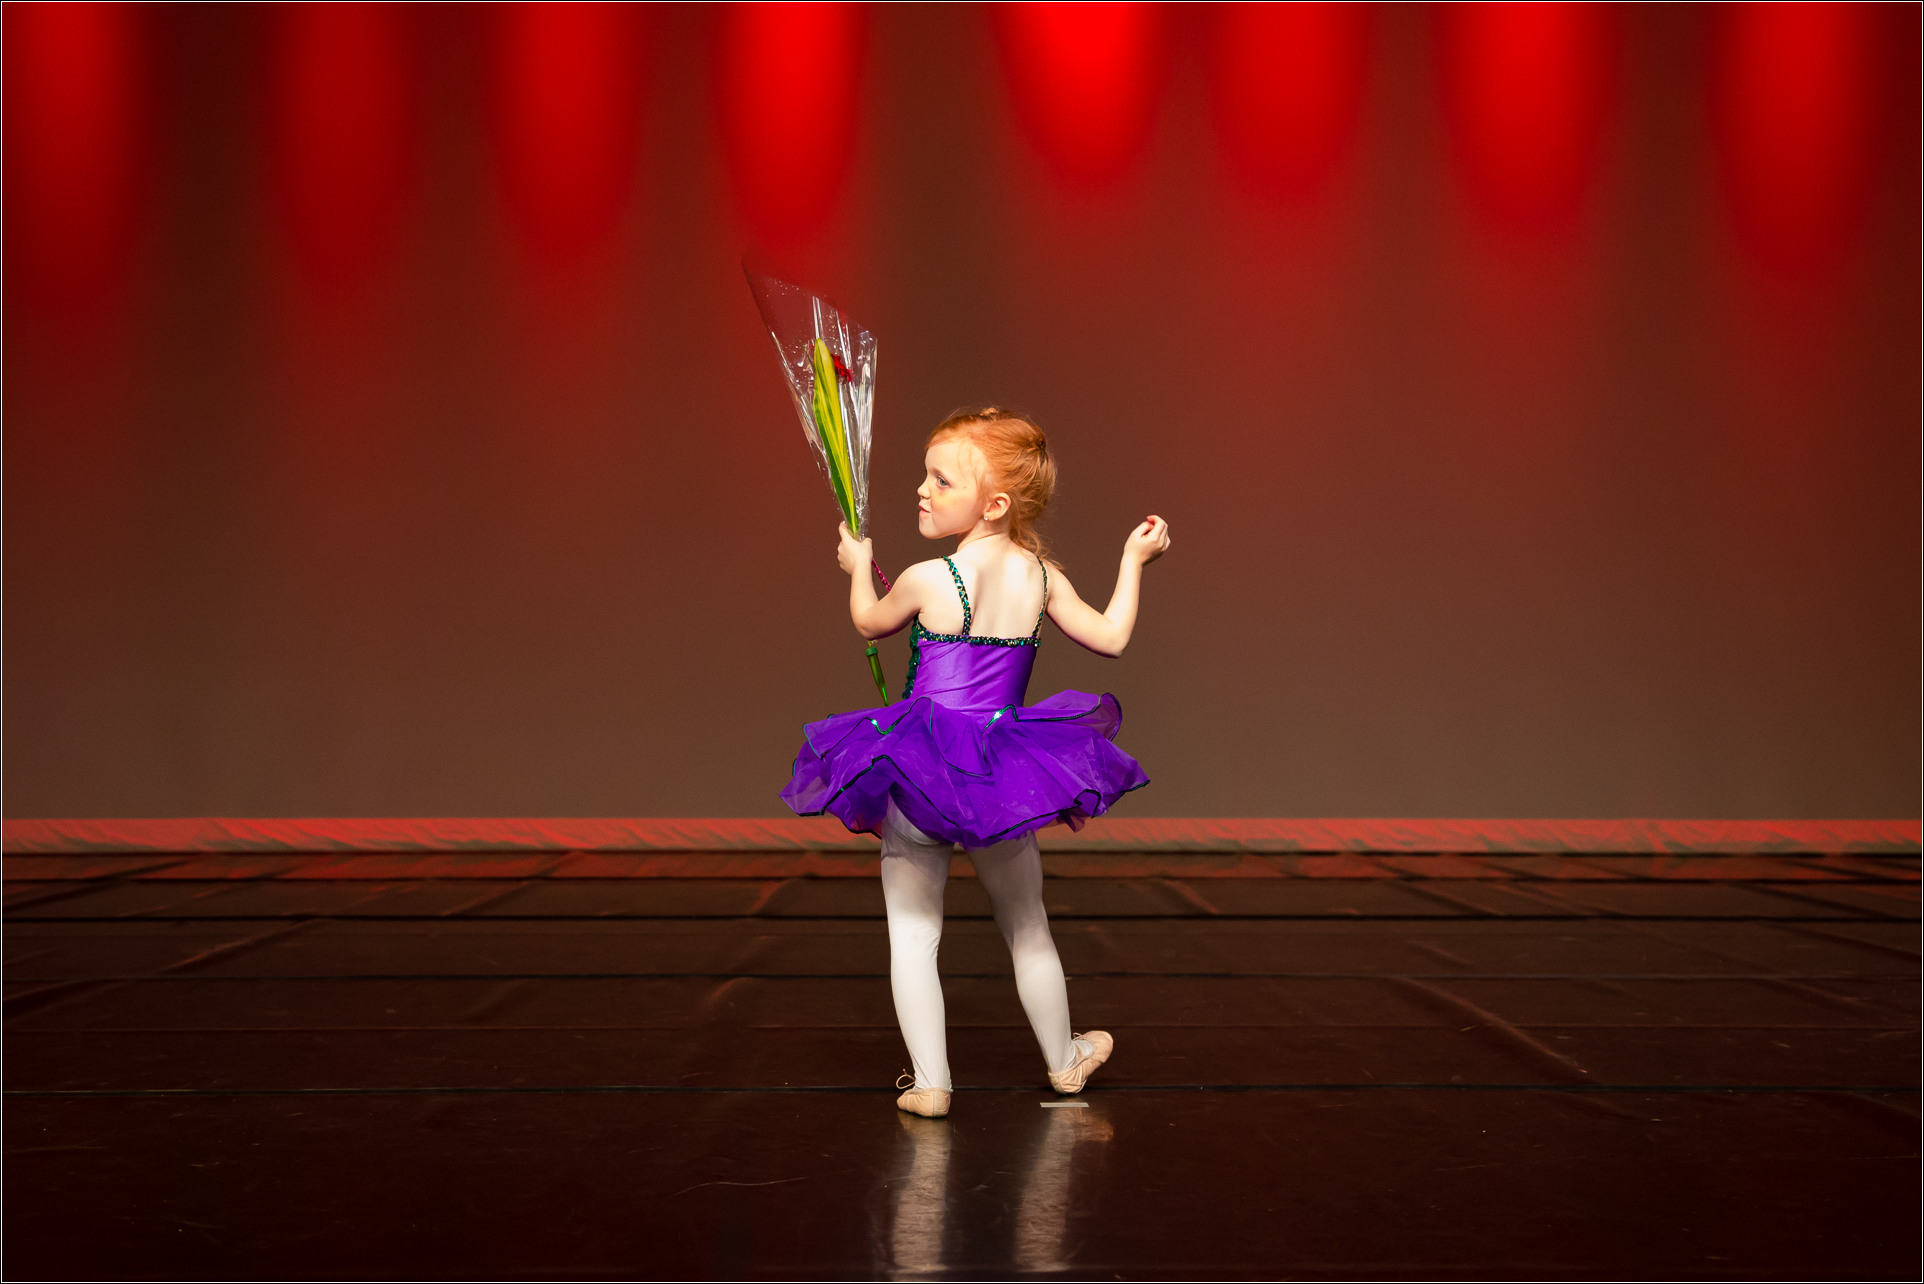 Kezia at the springbank dancers recital christopher martin photography flowers after the recital 2013 christopher martin mightylinksfo Choice Image